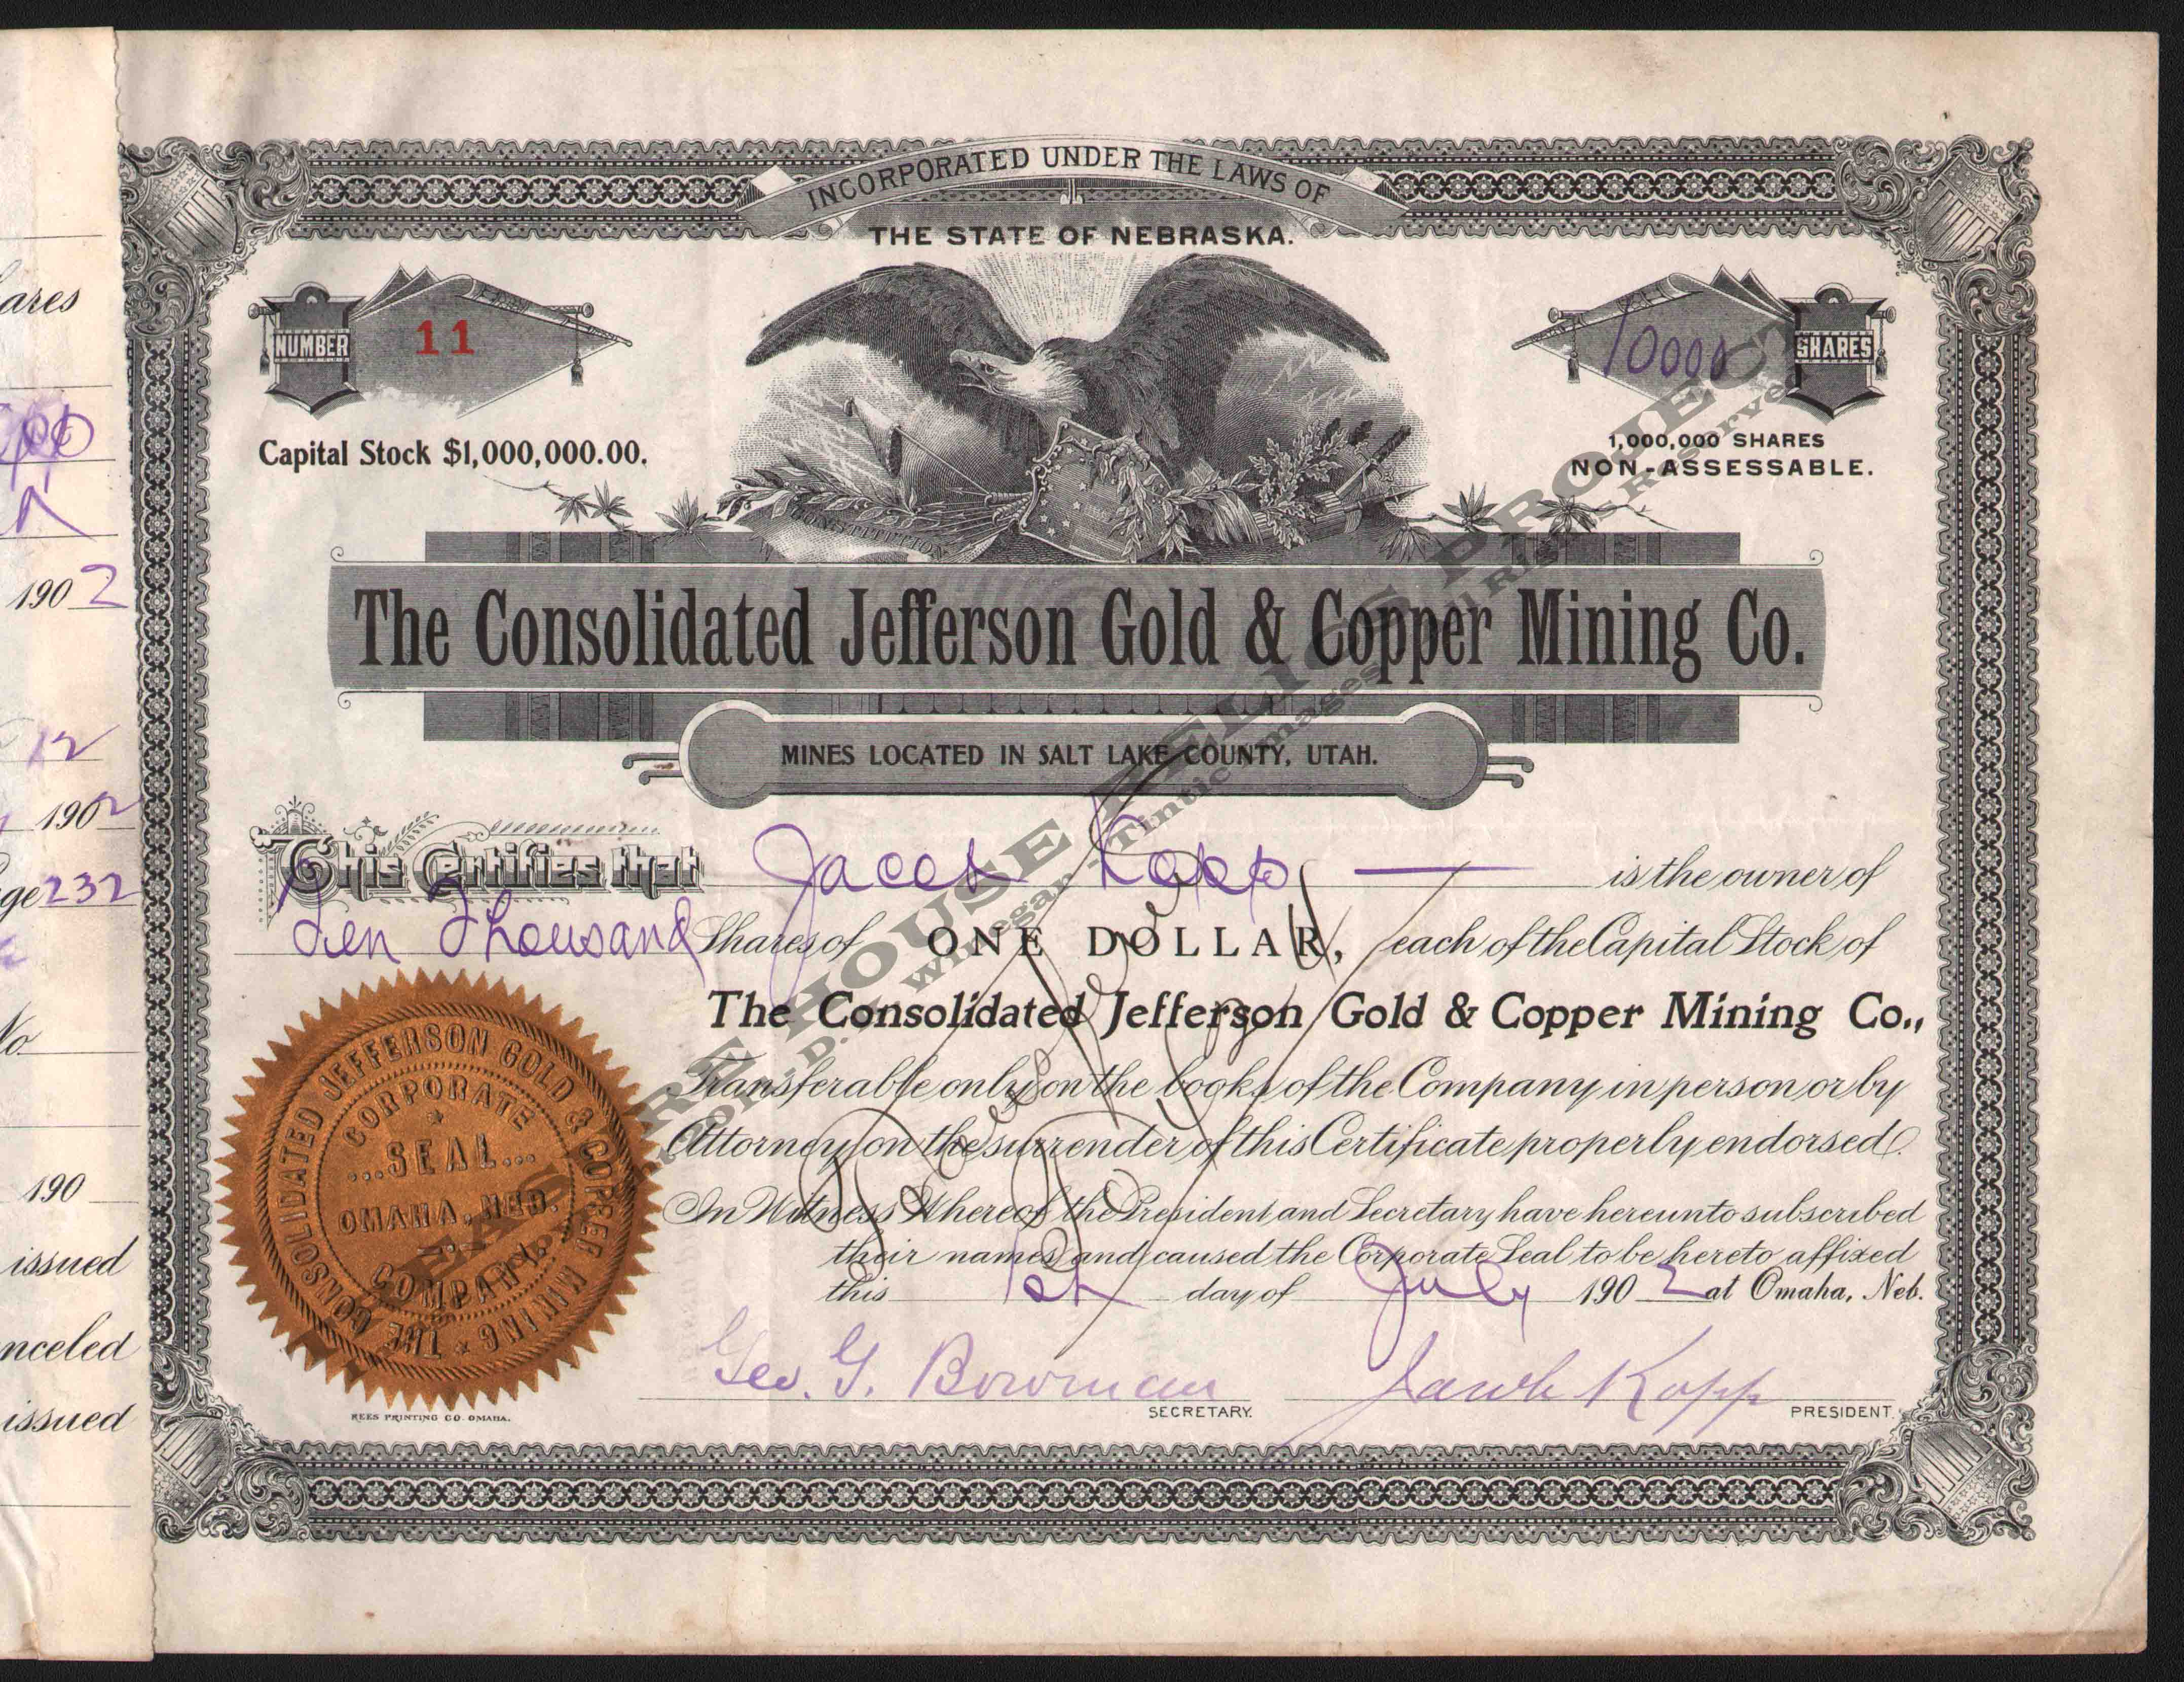 CON_JEFFERSON_MINING_CO_12_400_crop_emboss.jpg